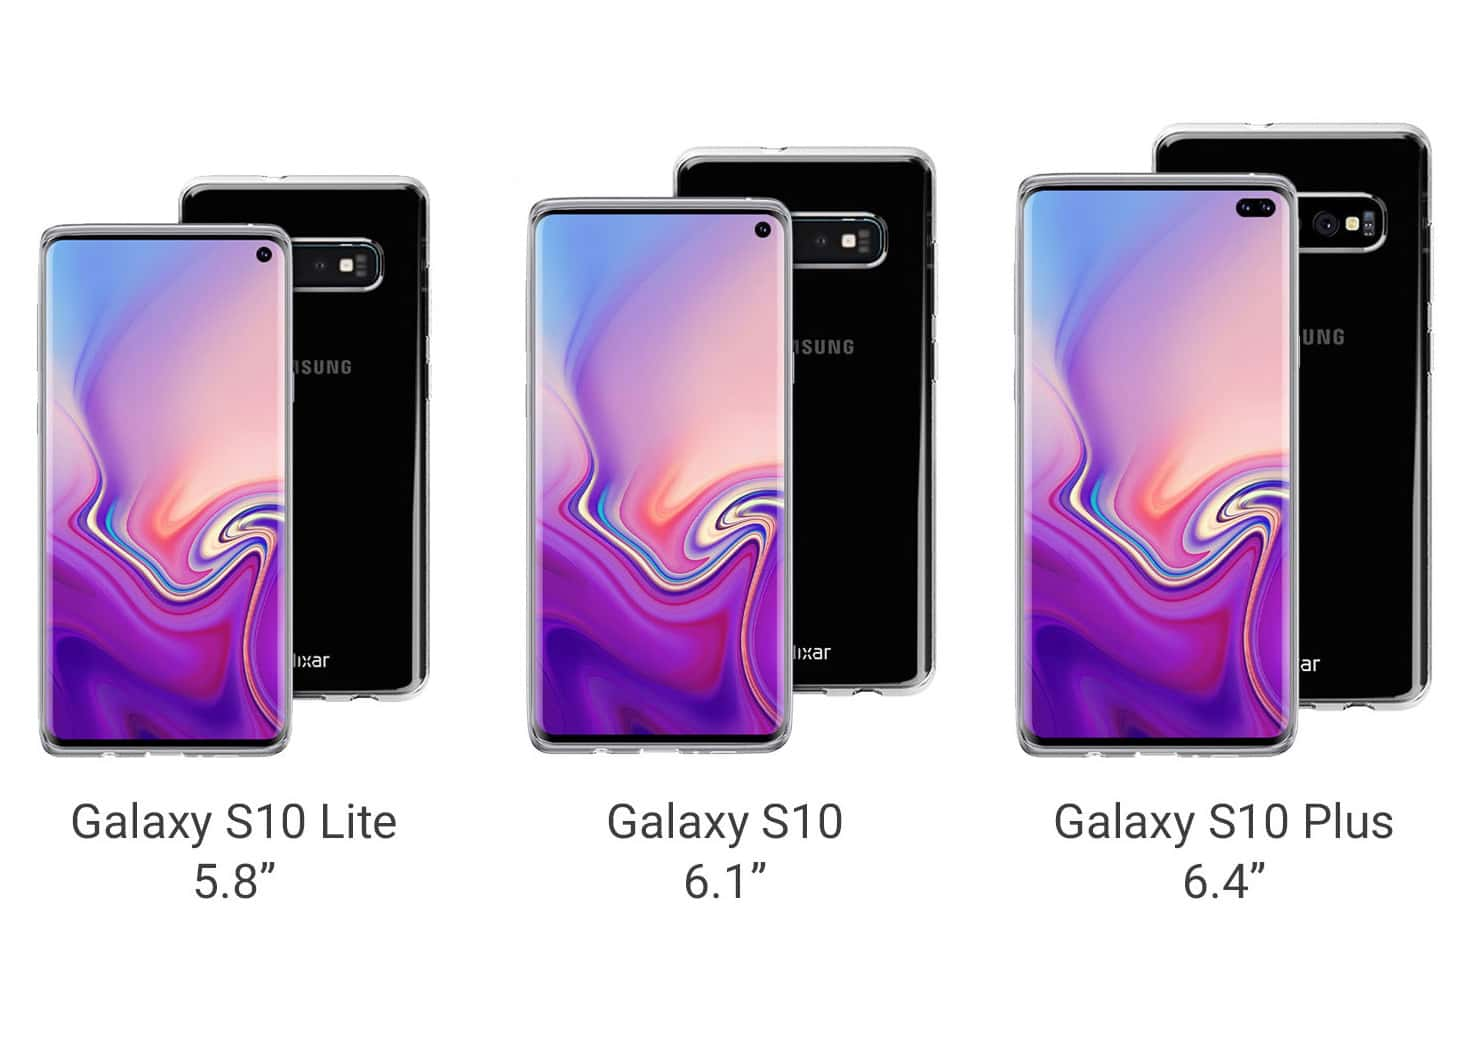 English online store declassified the entire line of the Galaxy S10